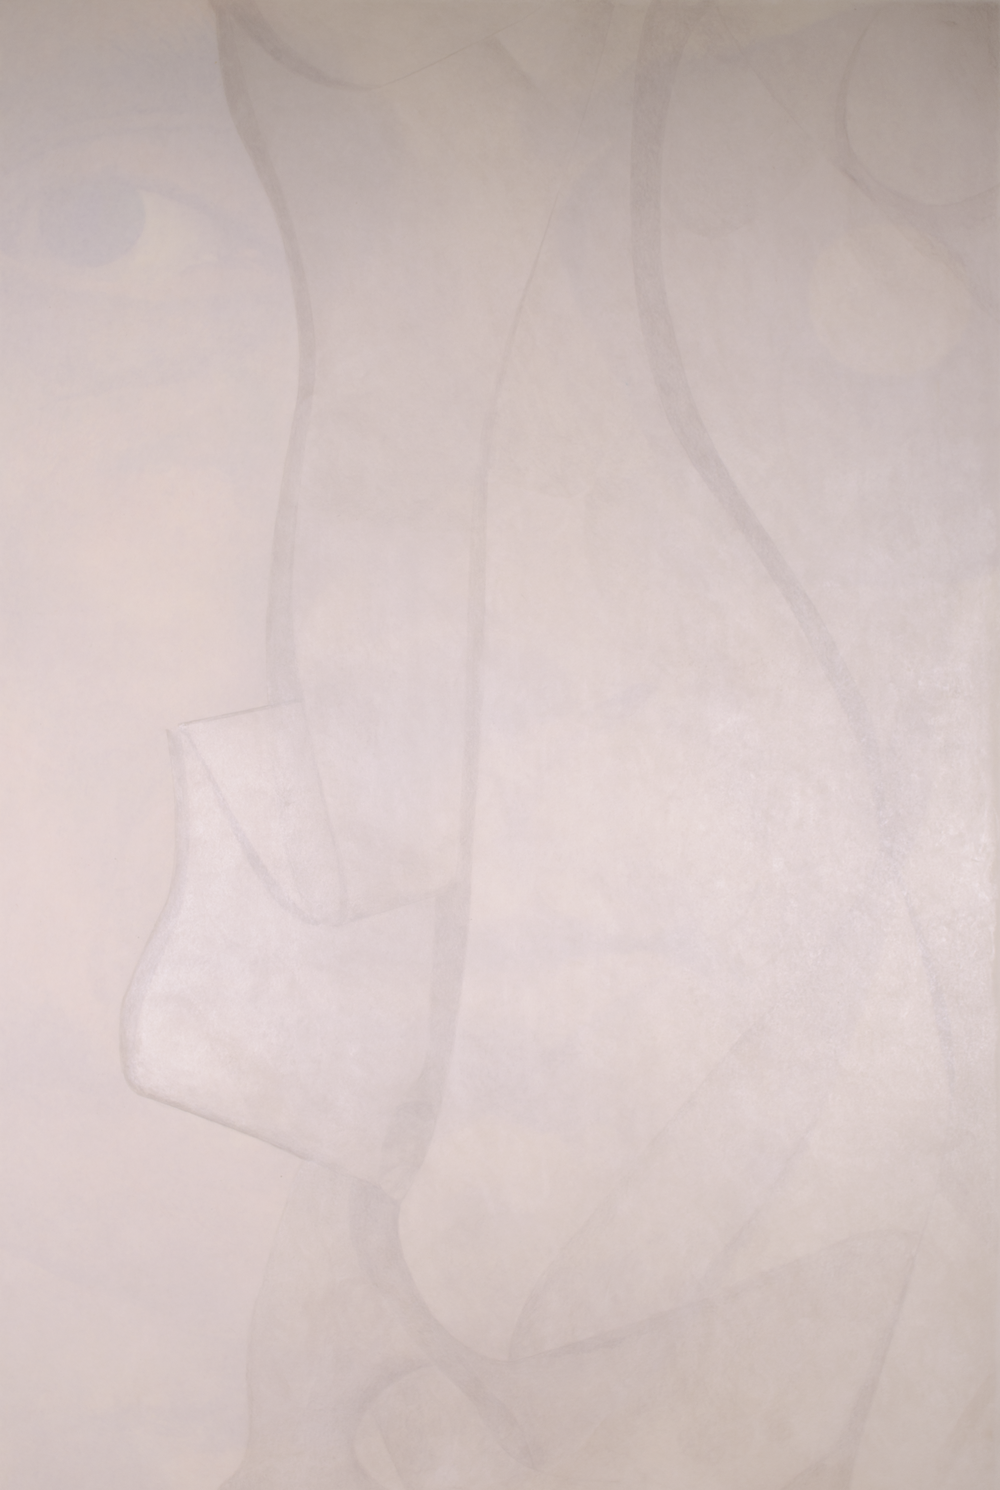 "Side #A…JEAN ARP 2016-17 © inspired by:- photographer not known (black & white); oil pastel, color pencils ON PAPER  49.5"" x 73.5"" [125.73 cm x 186.69 cm]"